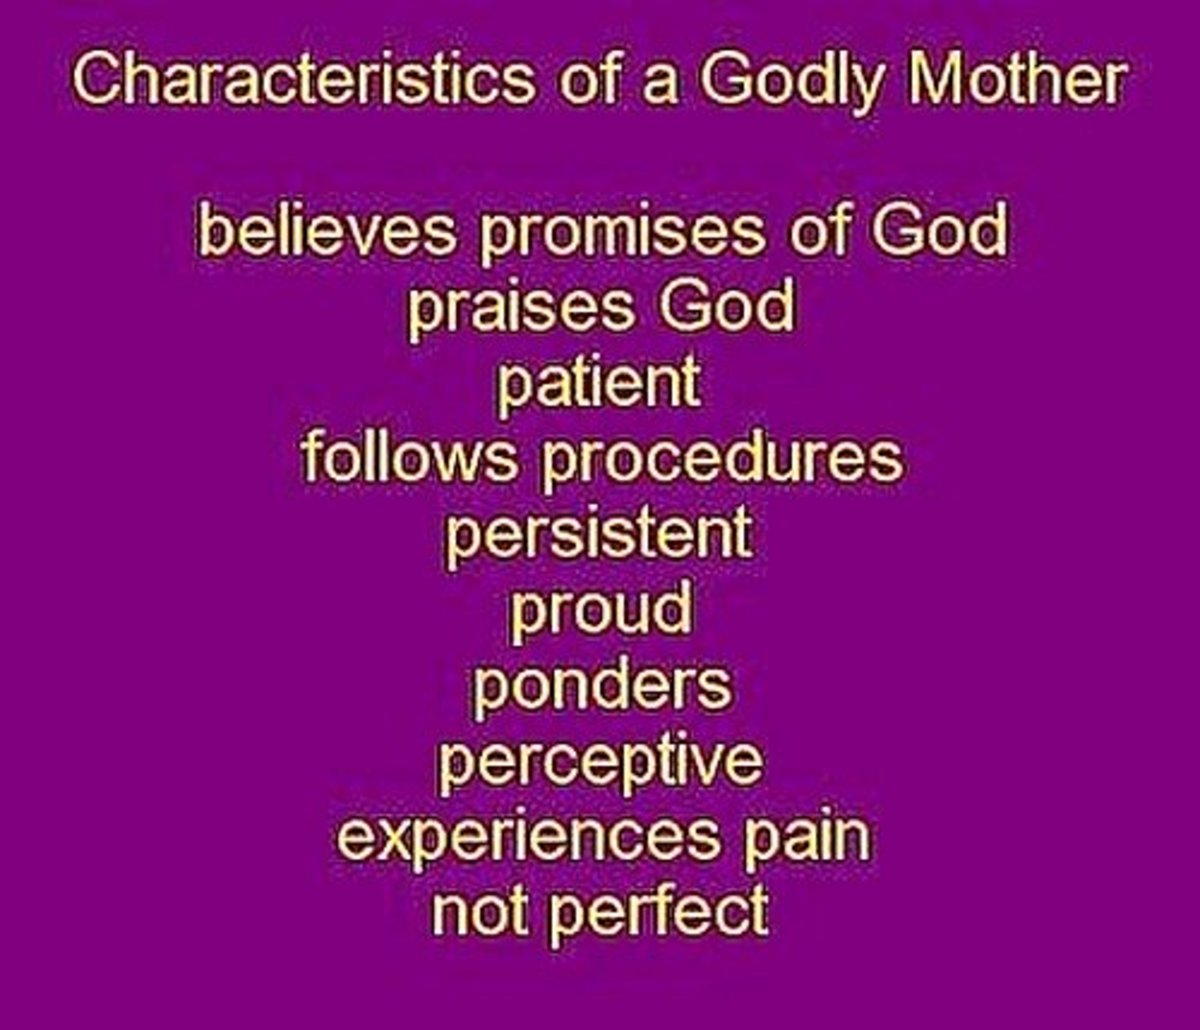 characteristics-of-a-godly-mother